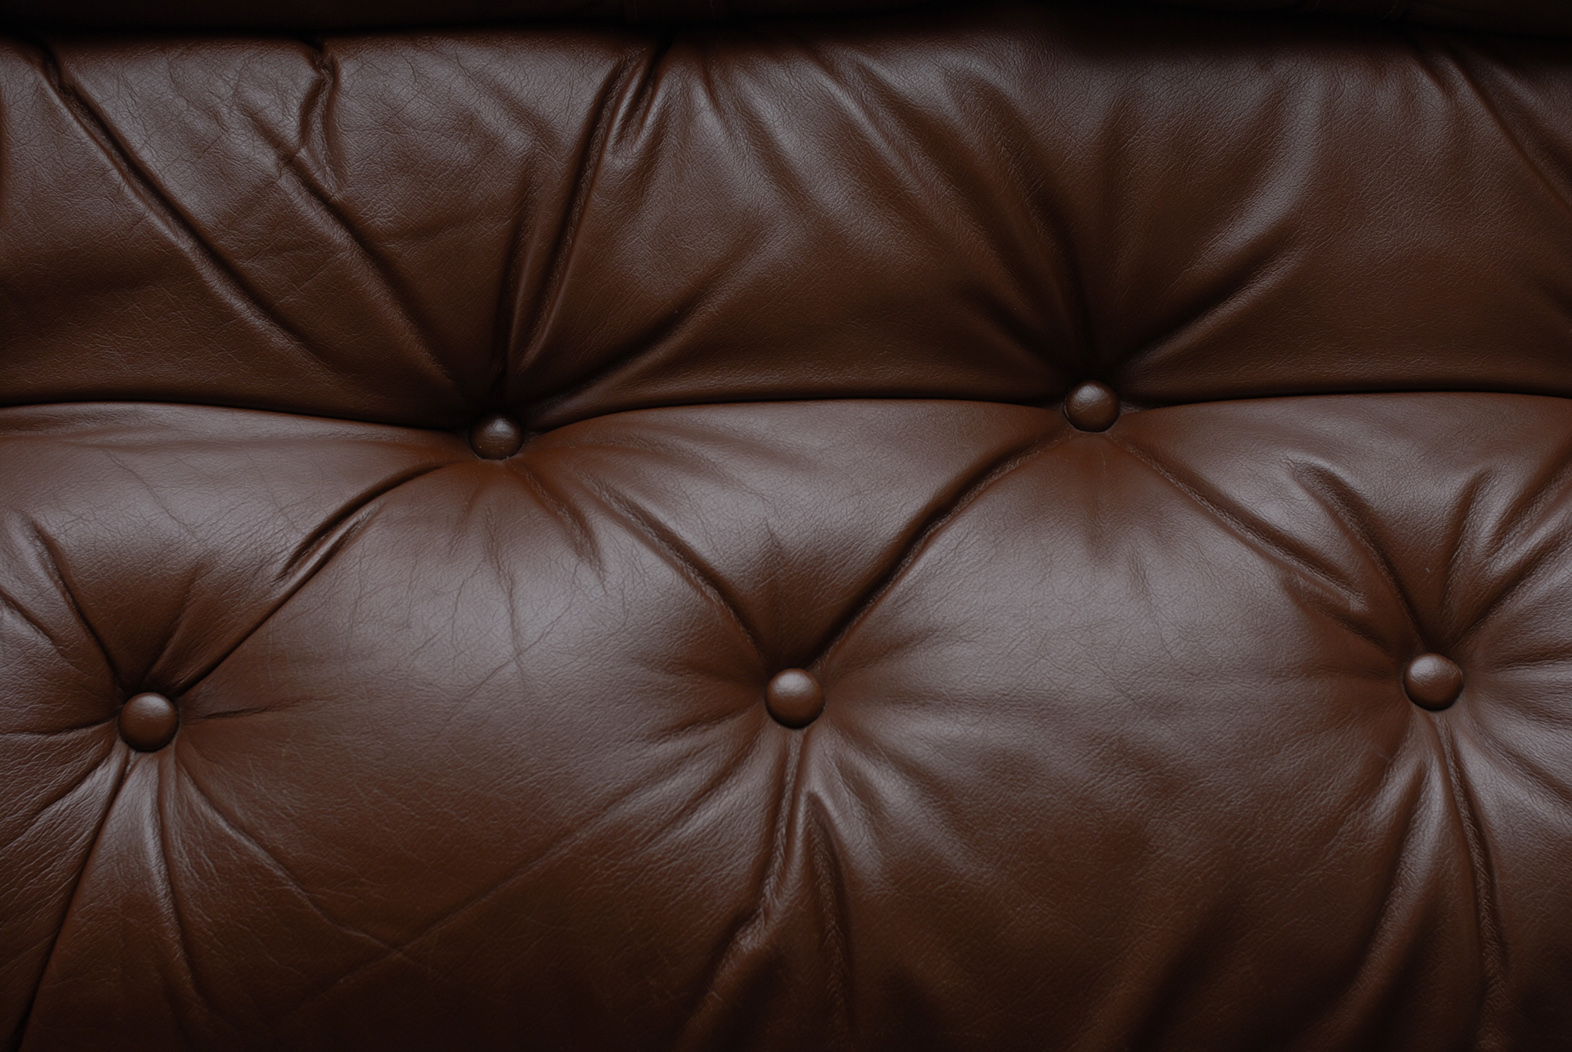 Free Stock Photo 1892 Leather Sofa Background Texture